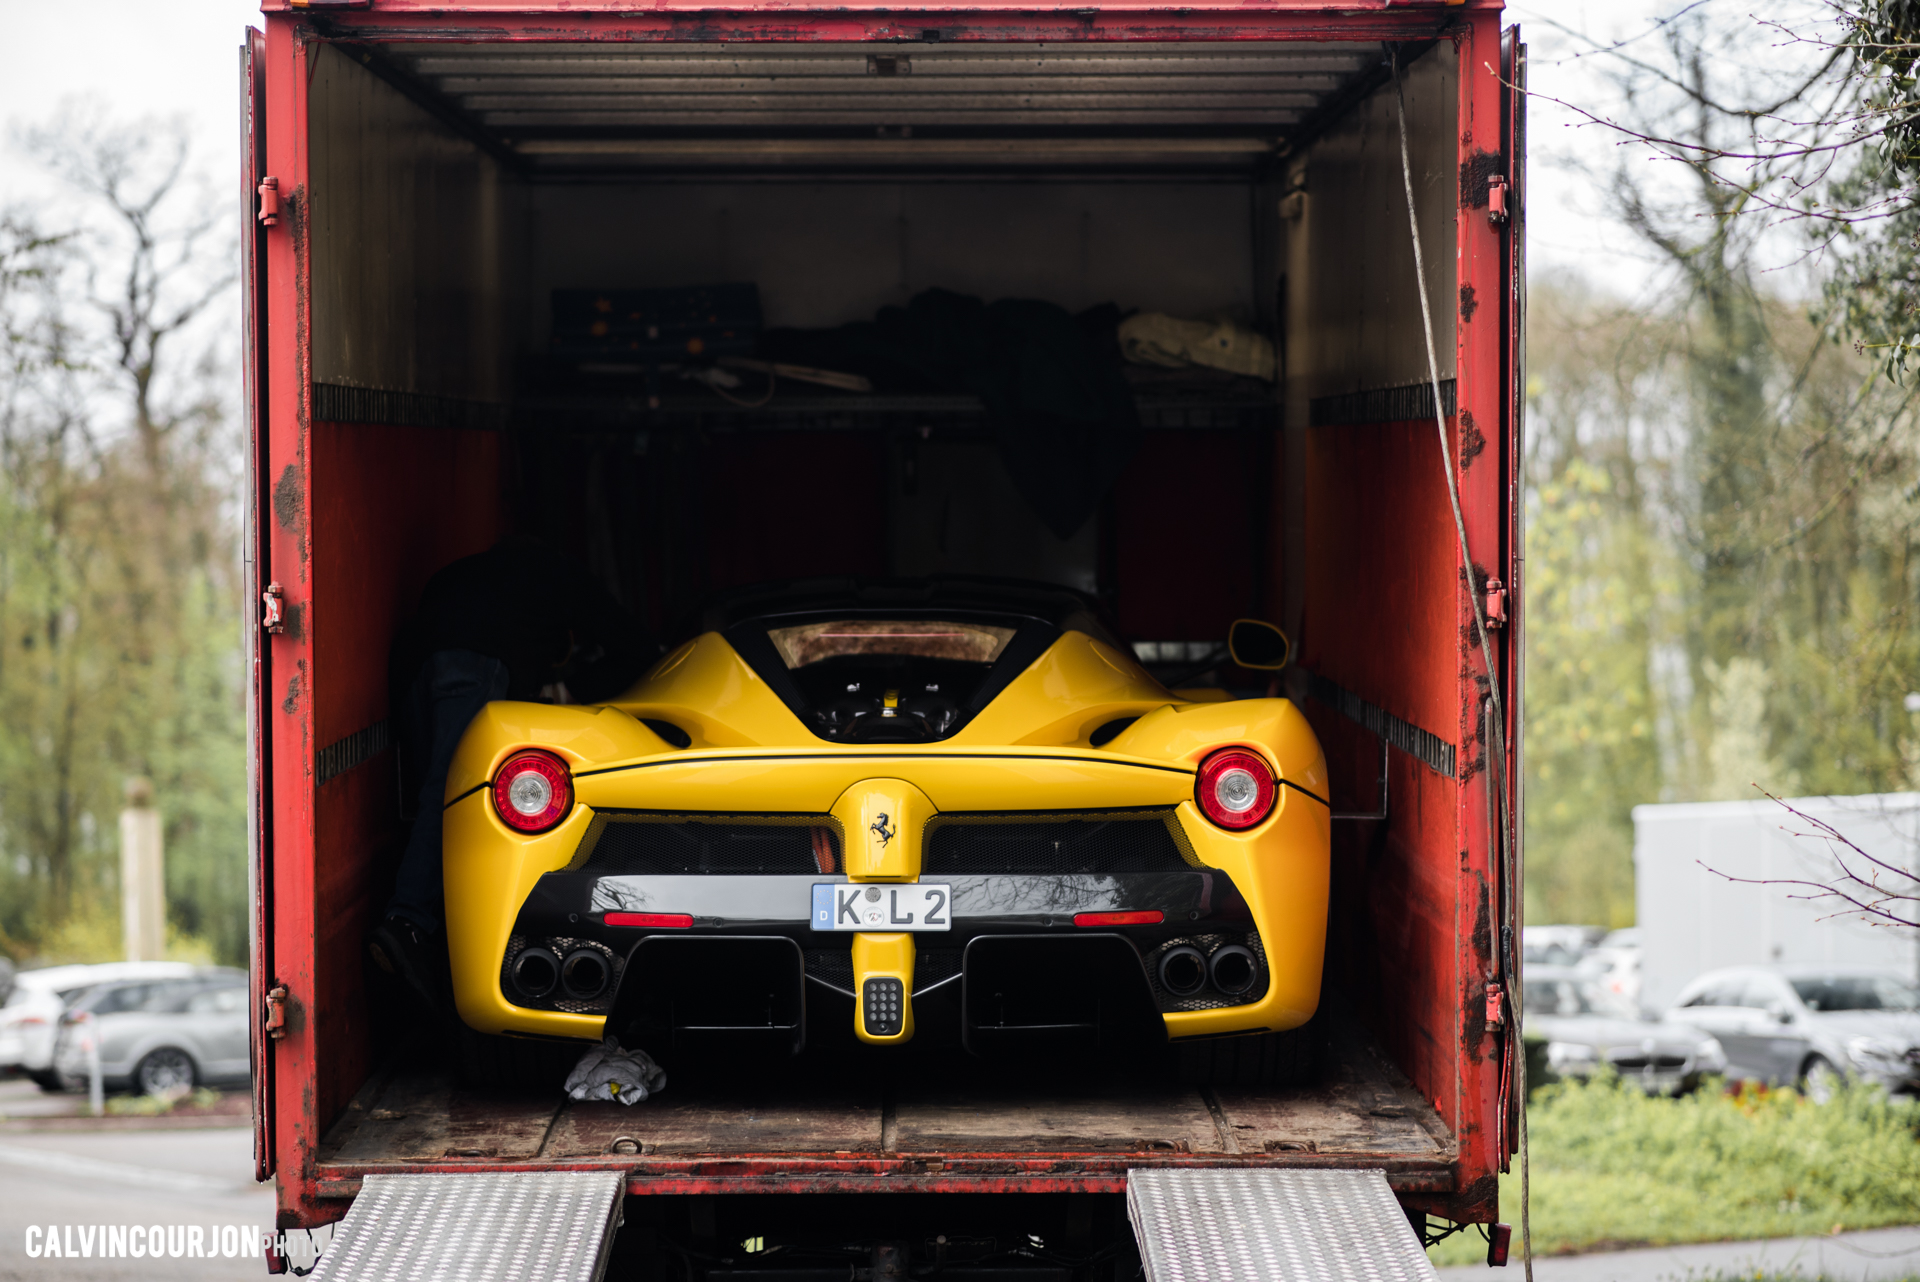 Laferrari rear in truck - 2016 - Calvin Courjon Photographie